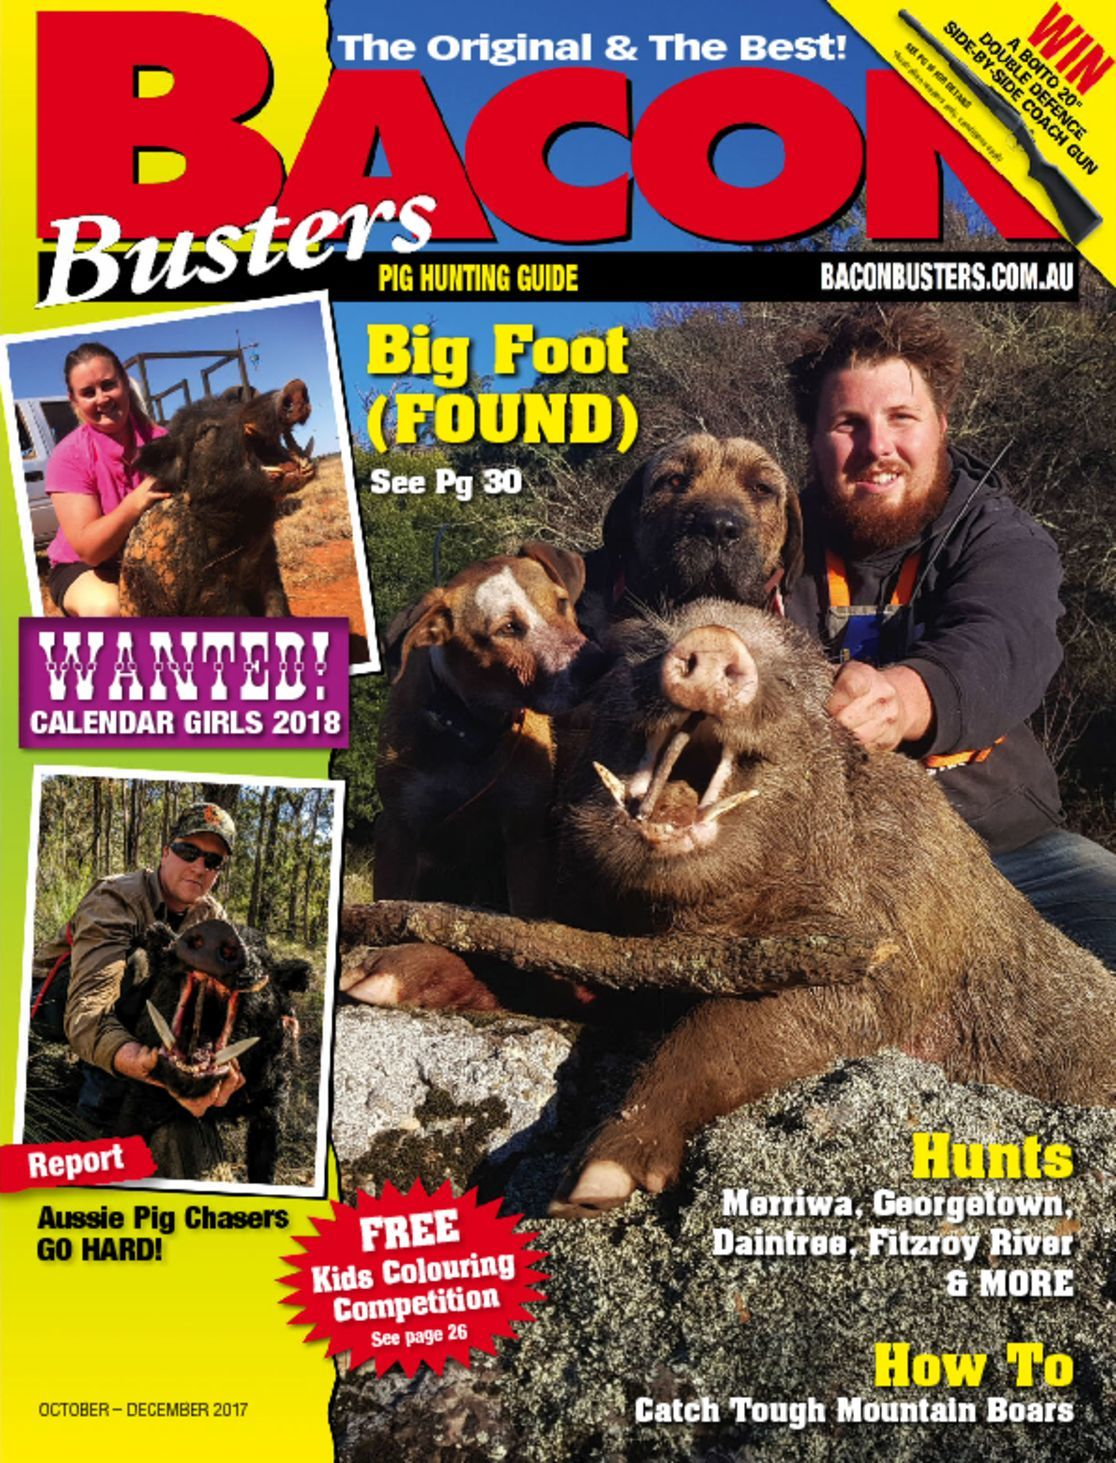 Bacon Busters Digital